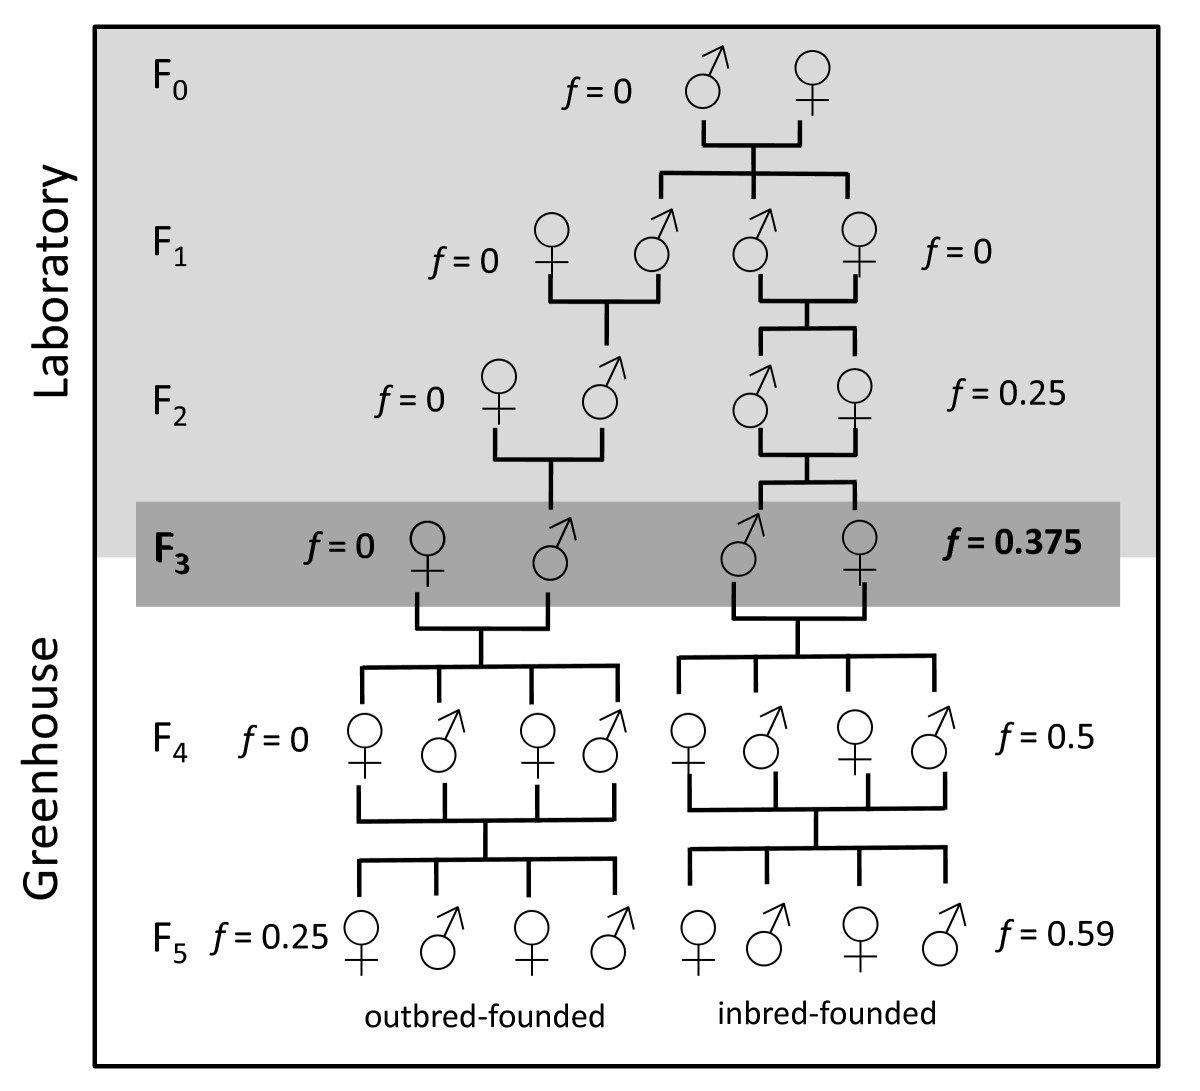 https://static-content.springer.com/image/art%3A10.1186%2F1471-2148-9-289/MediaObjects/12862_2009_Article_1203_Fig1_HTML.jpg